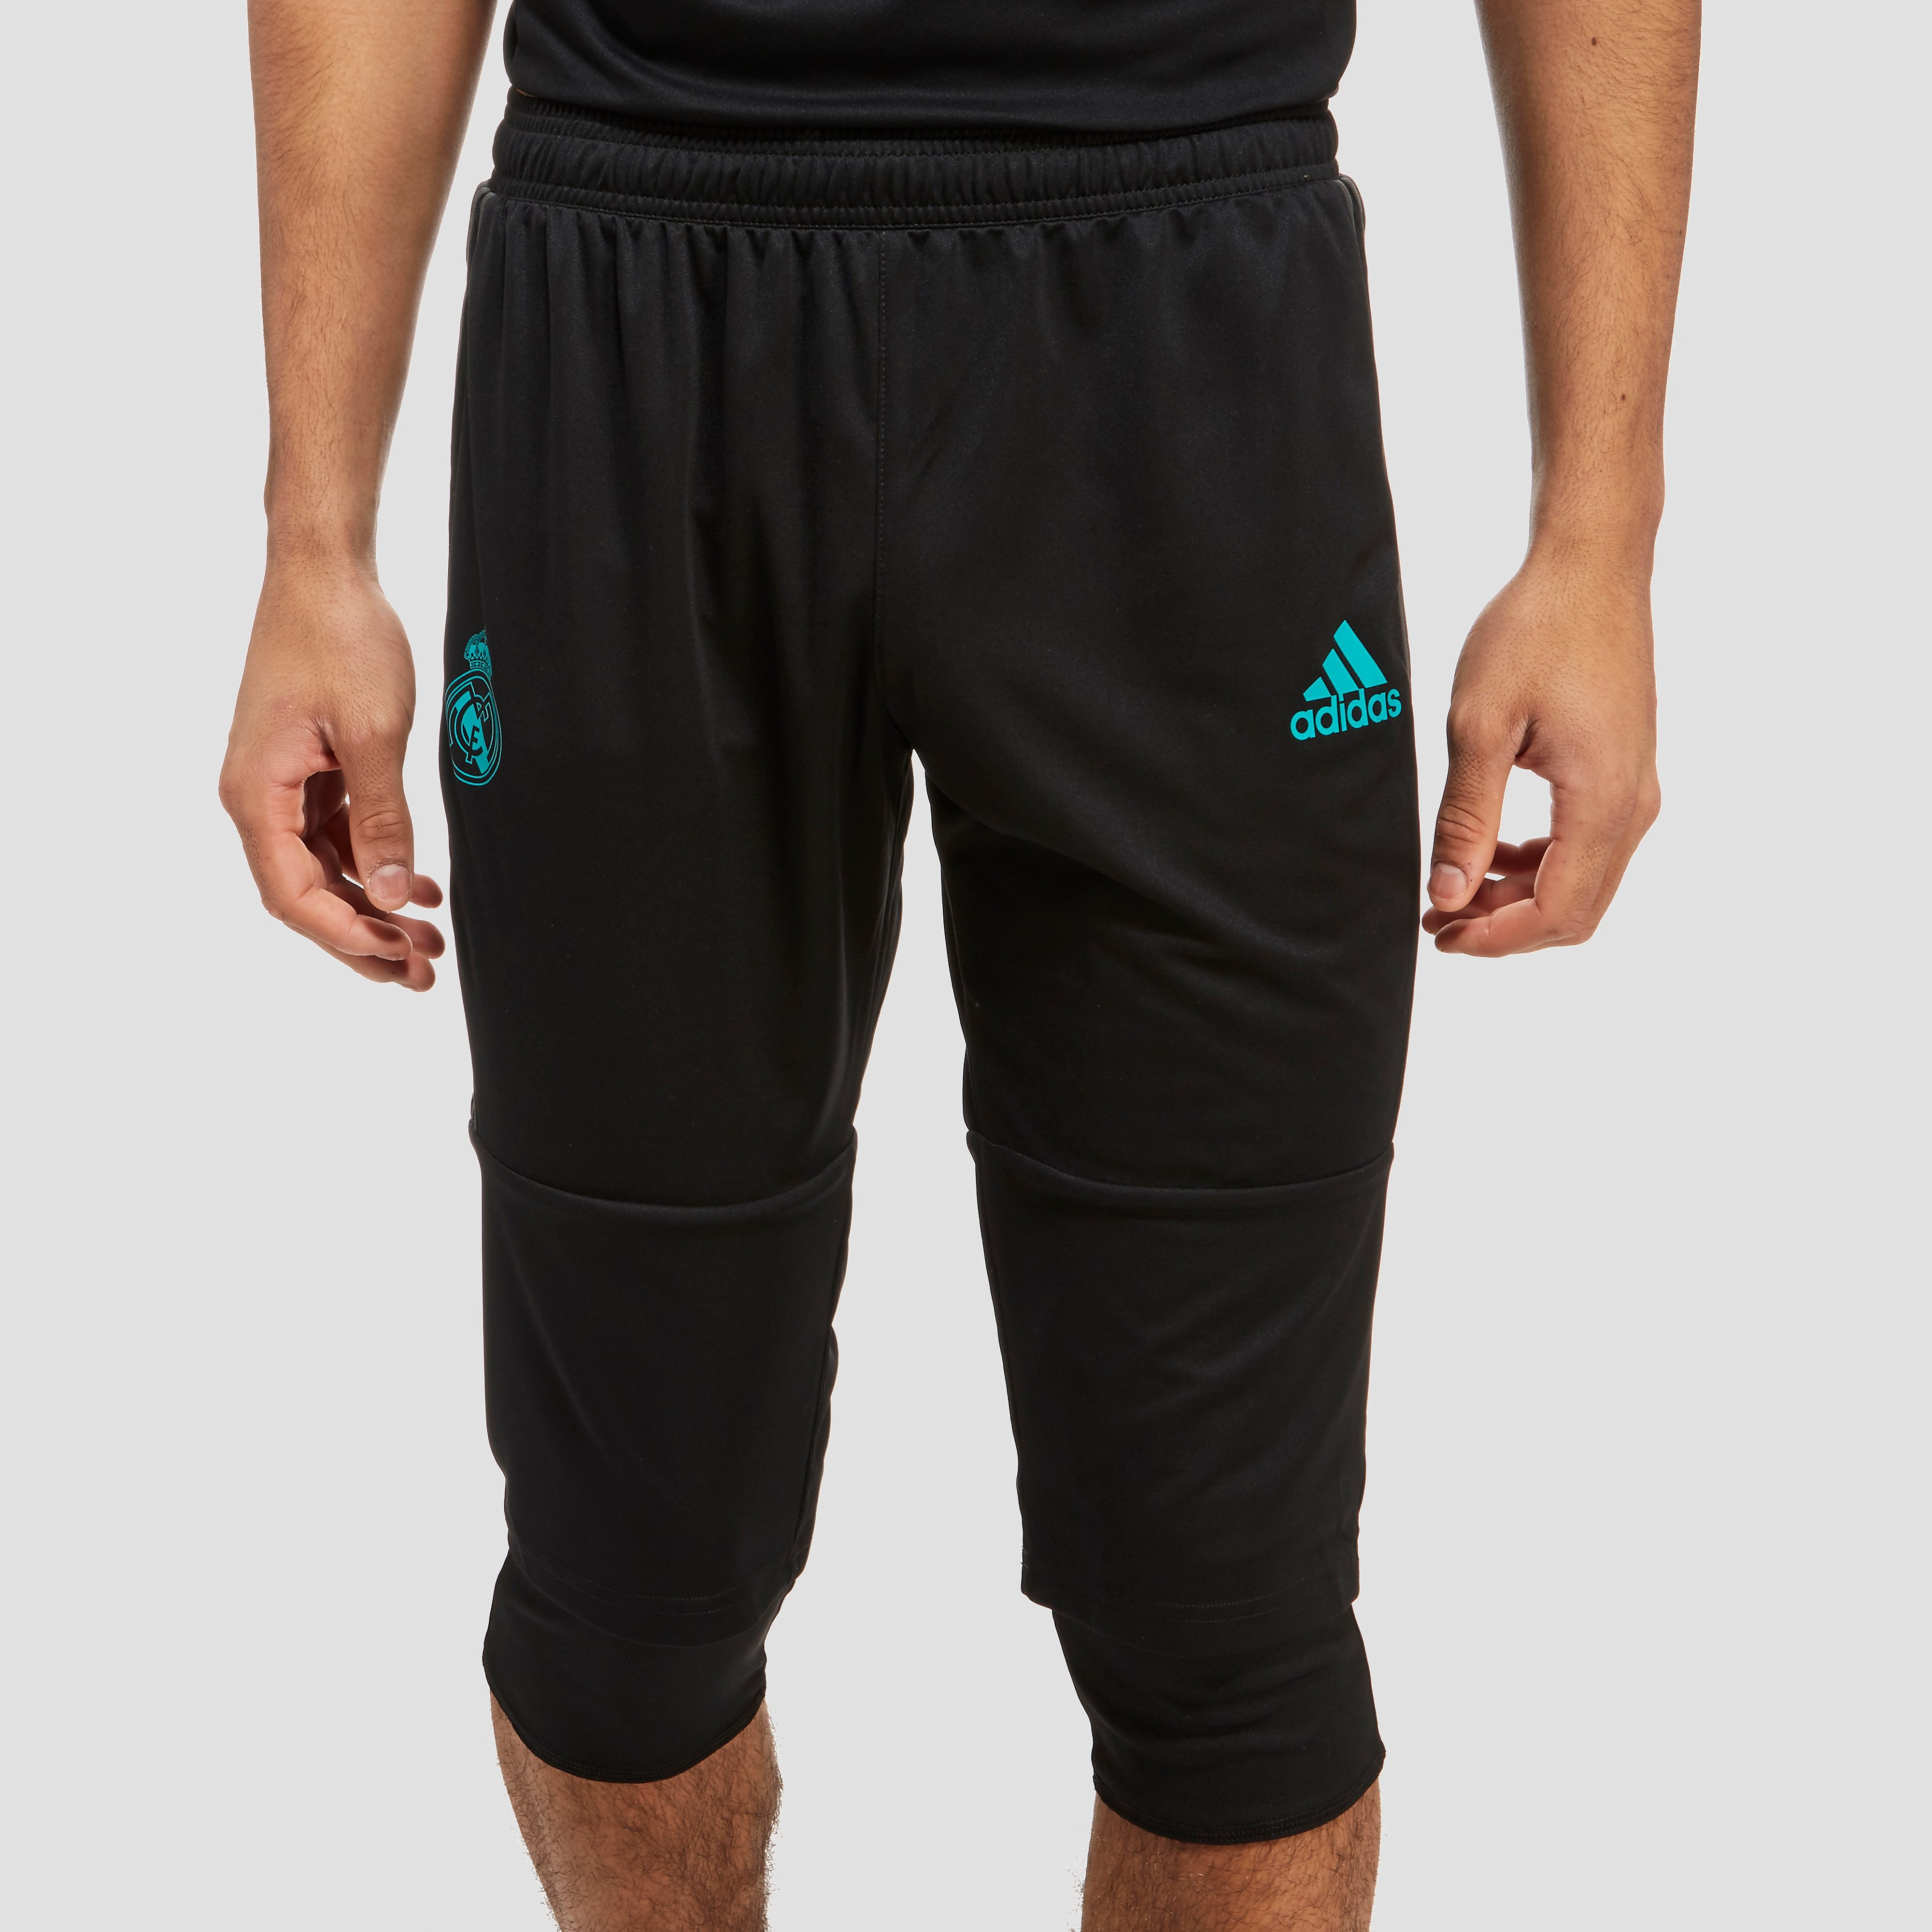 adidas Real Madrid 2017 3/4 Men's Training Pants